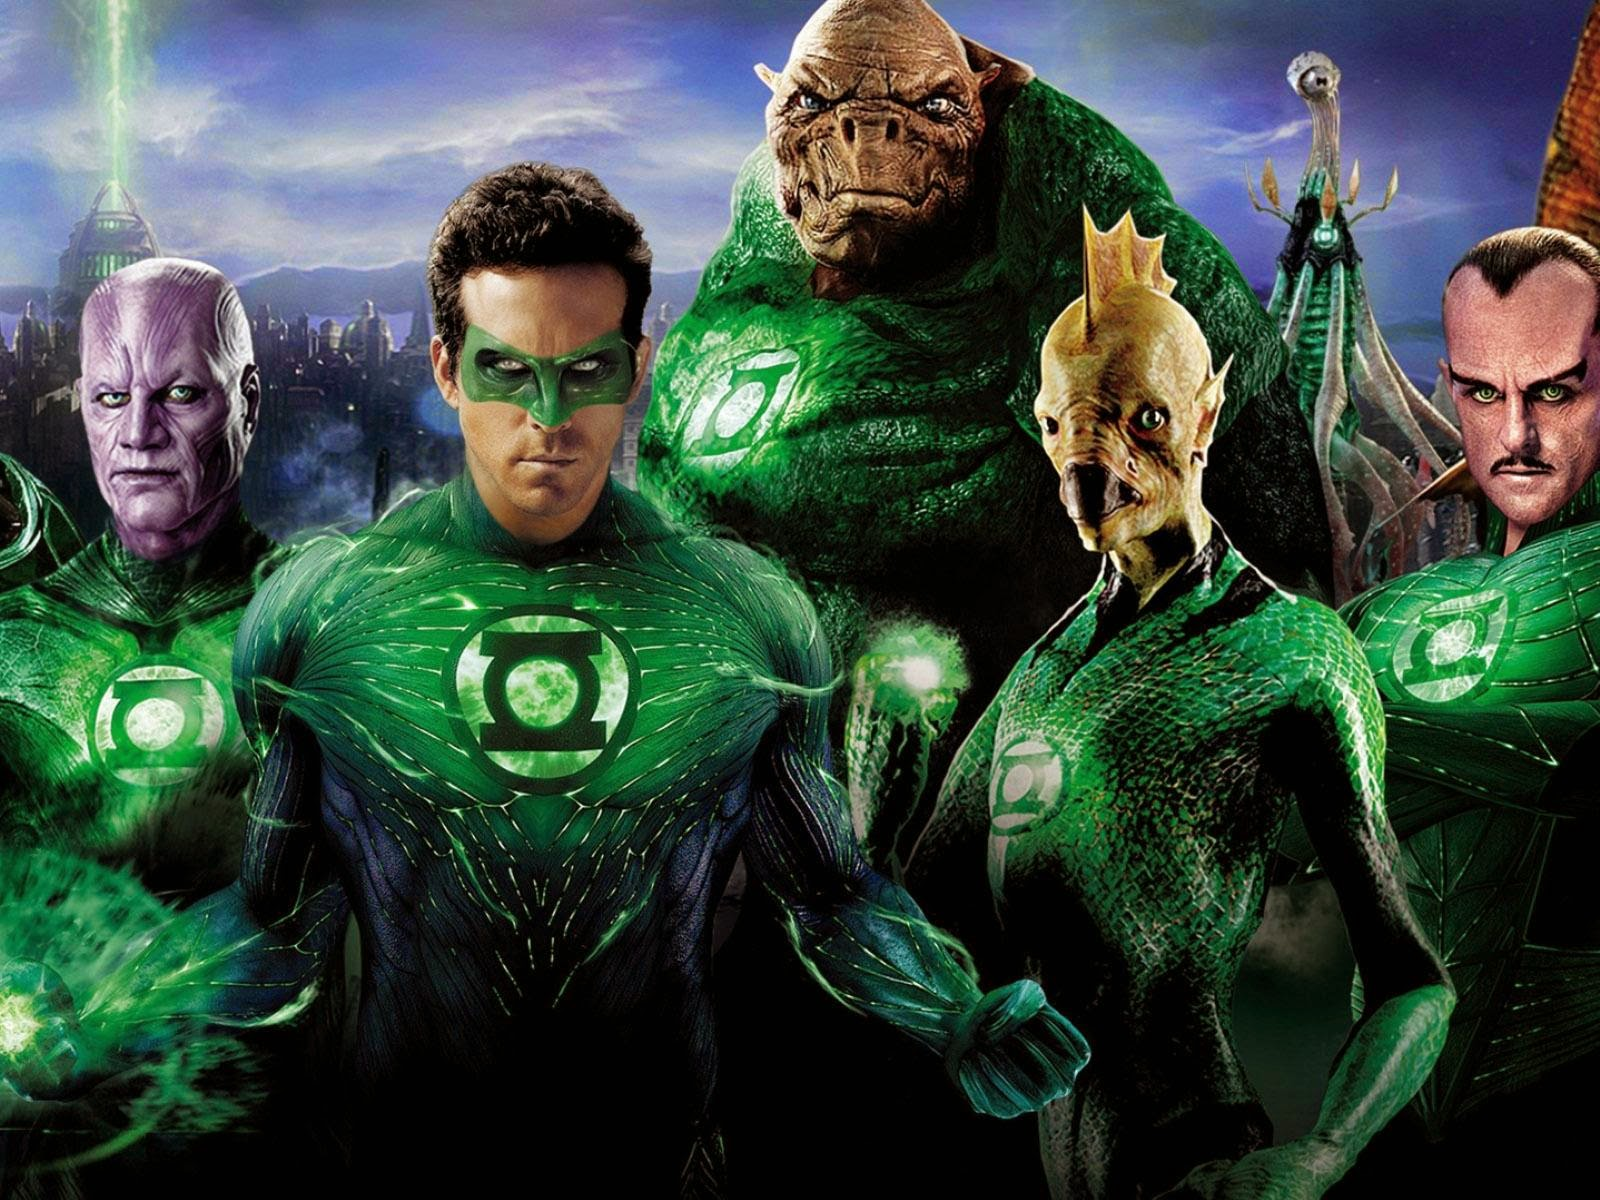 The Green Lantern Corps - Abin Sur (Temuera Morrison), Hal Jordan (Ryan Reynolds), Kilowog, Tomar-Re, Sinestro (Mark Strong) - in Green Lantern (2011)